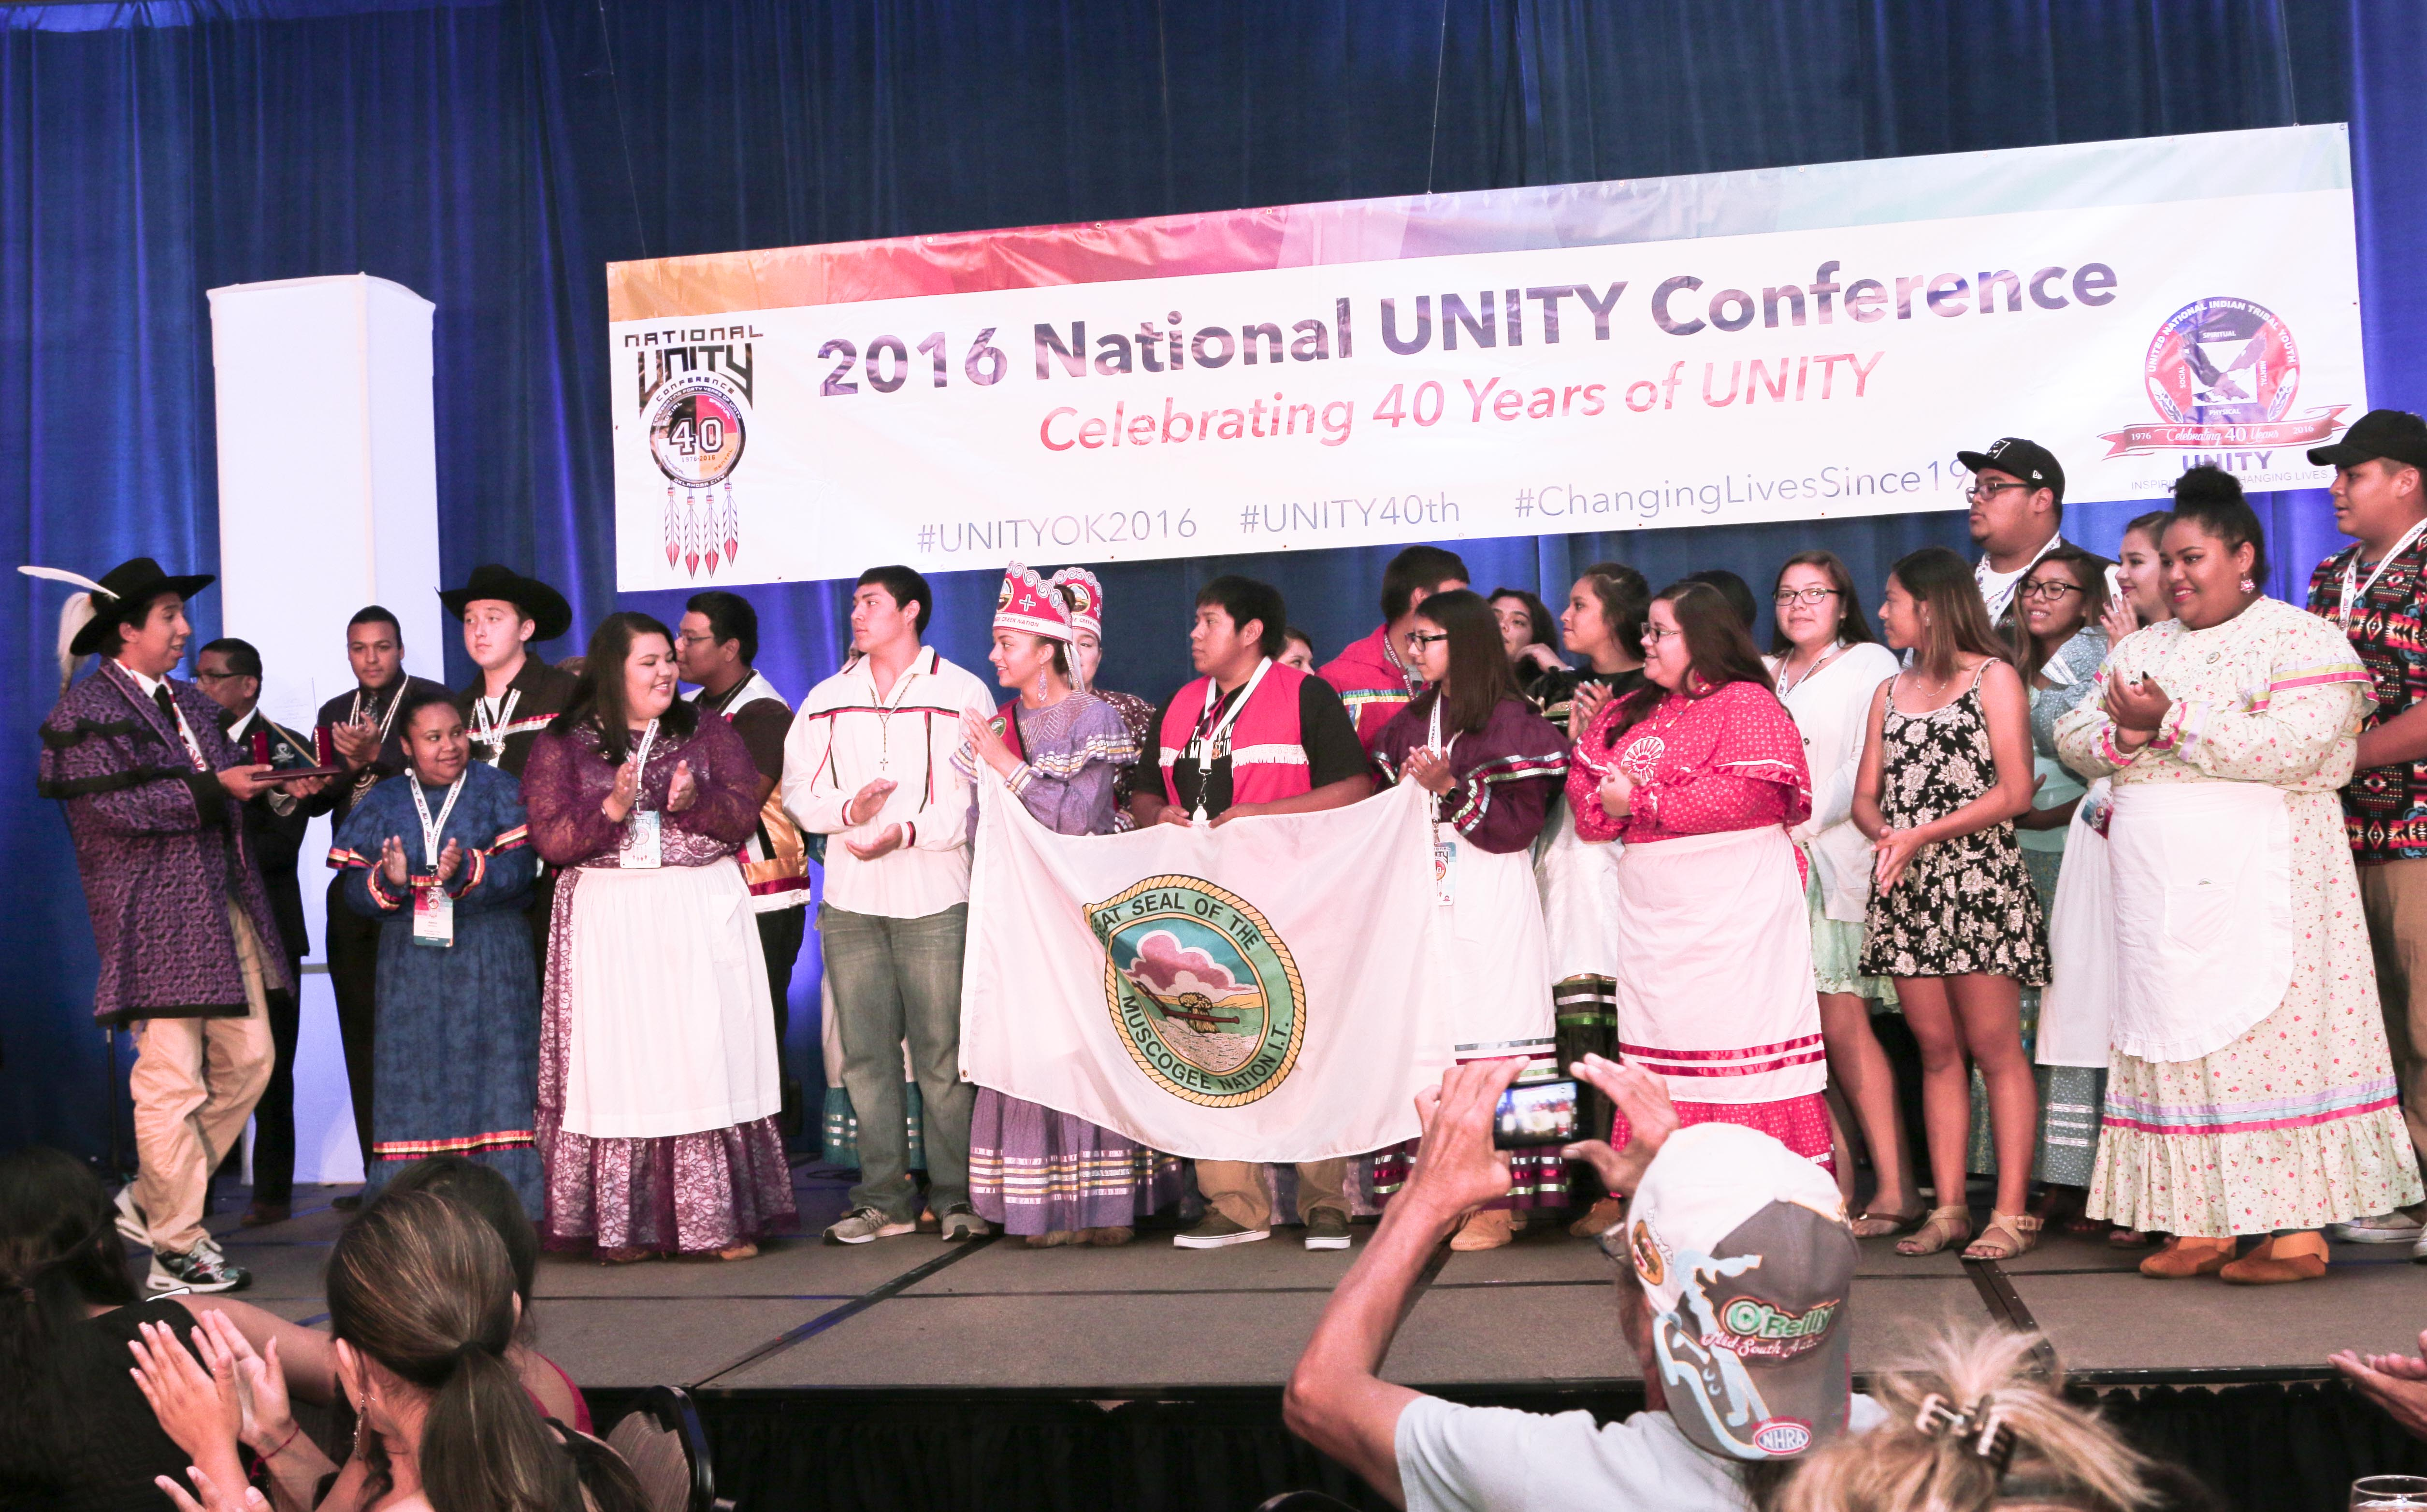 Muscogee (Creek) Nation Youth Council awarded Youth Council of the Year